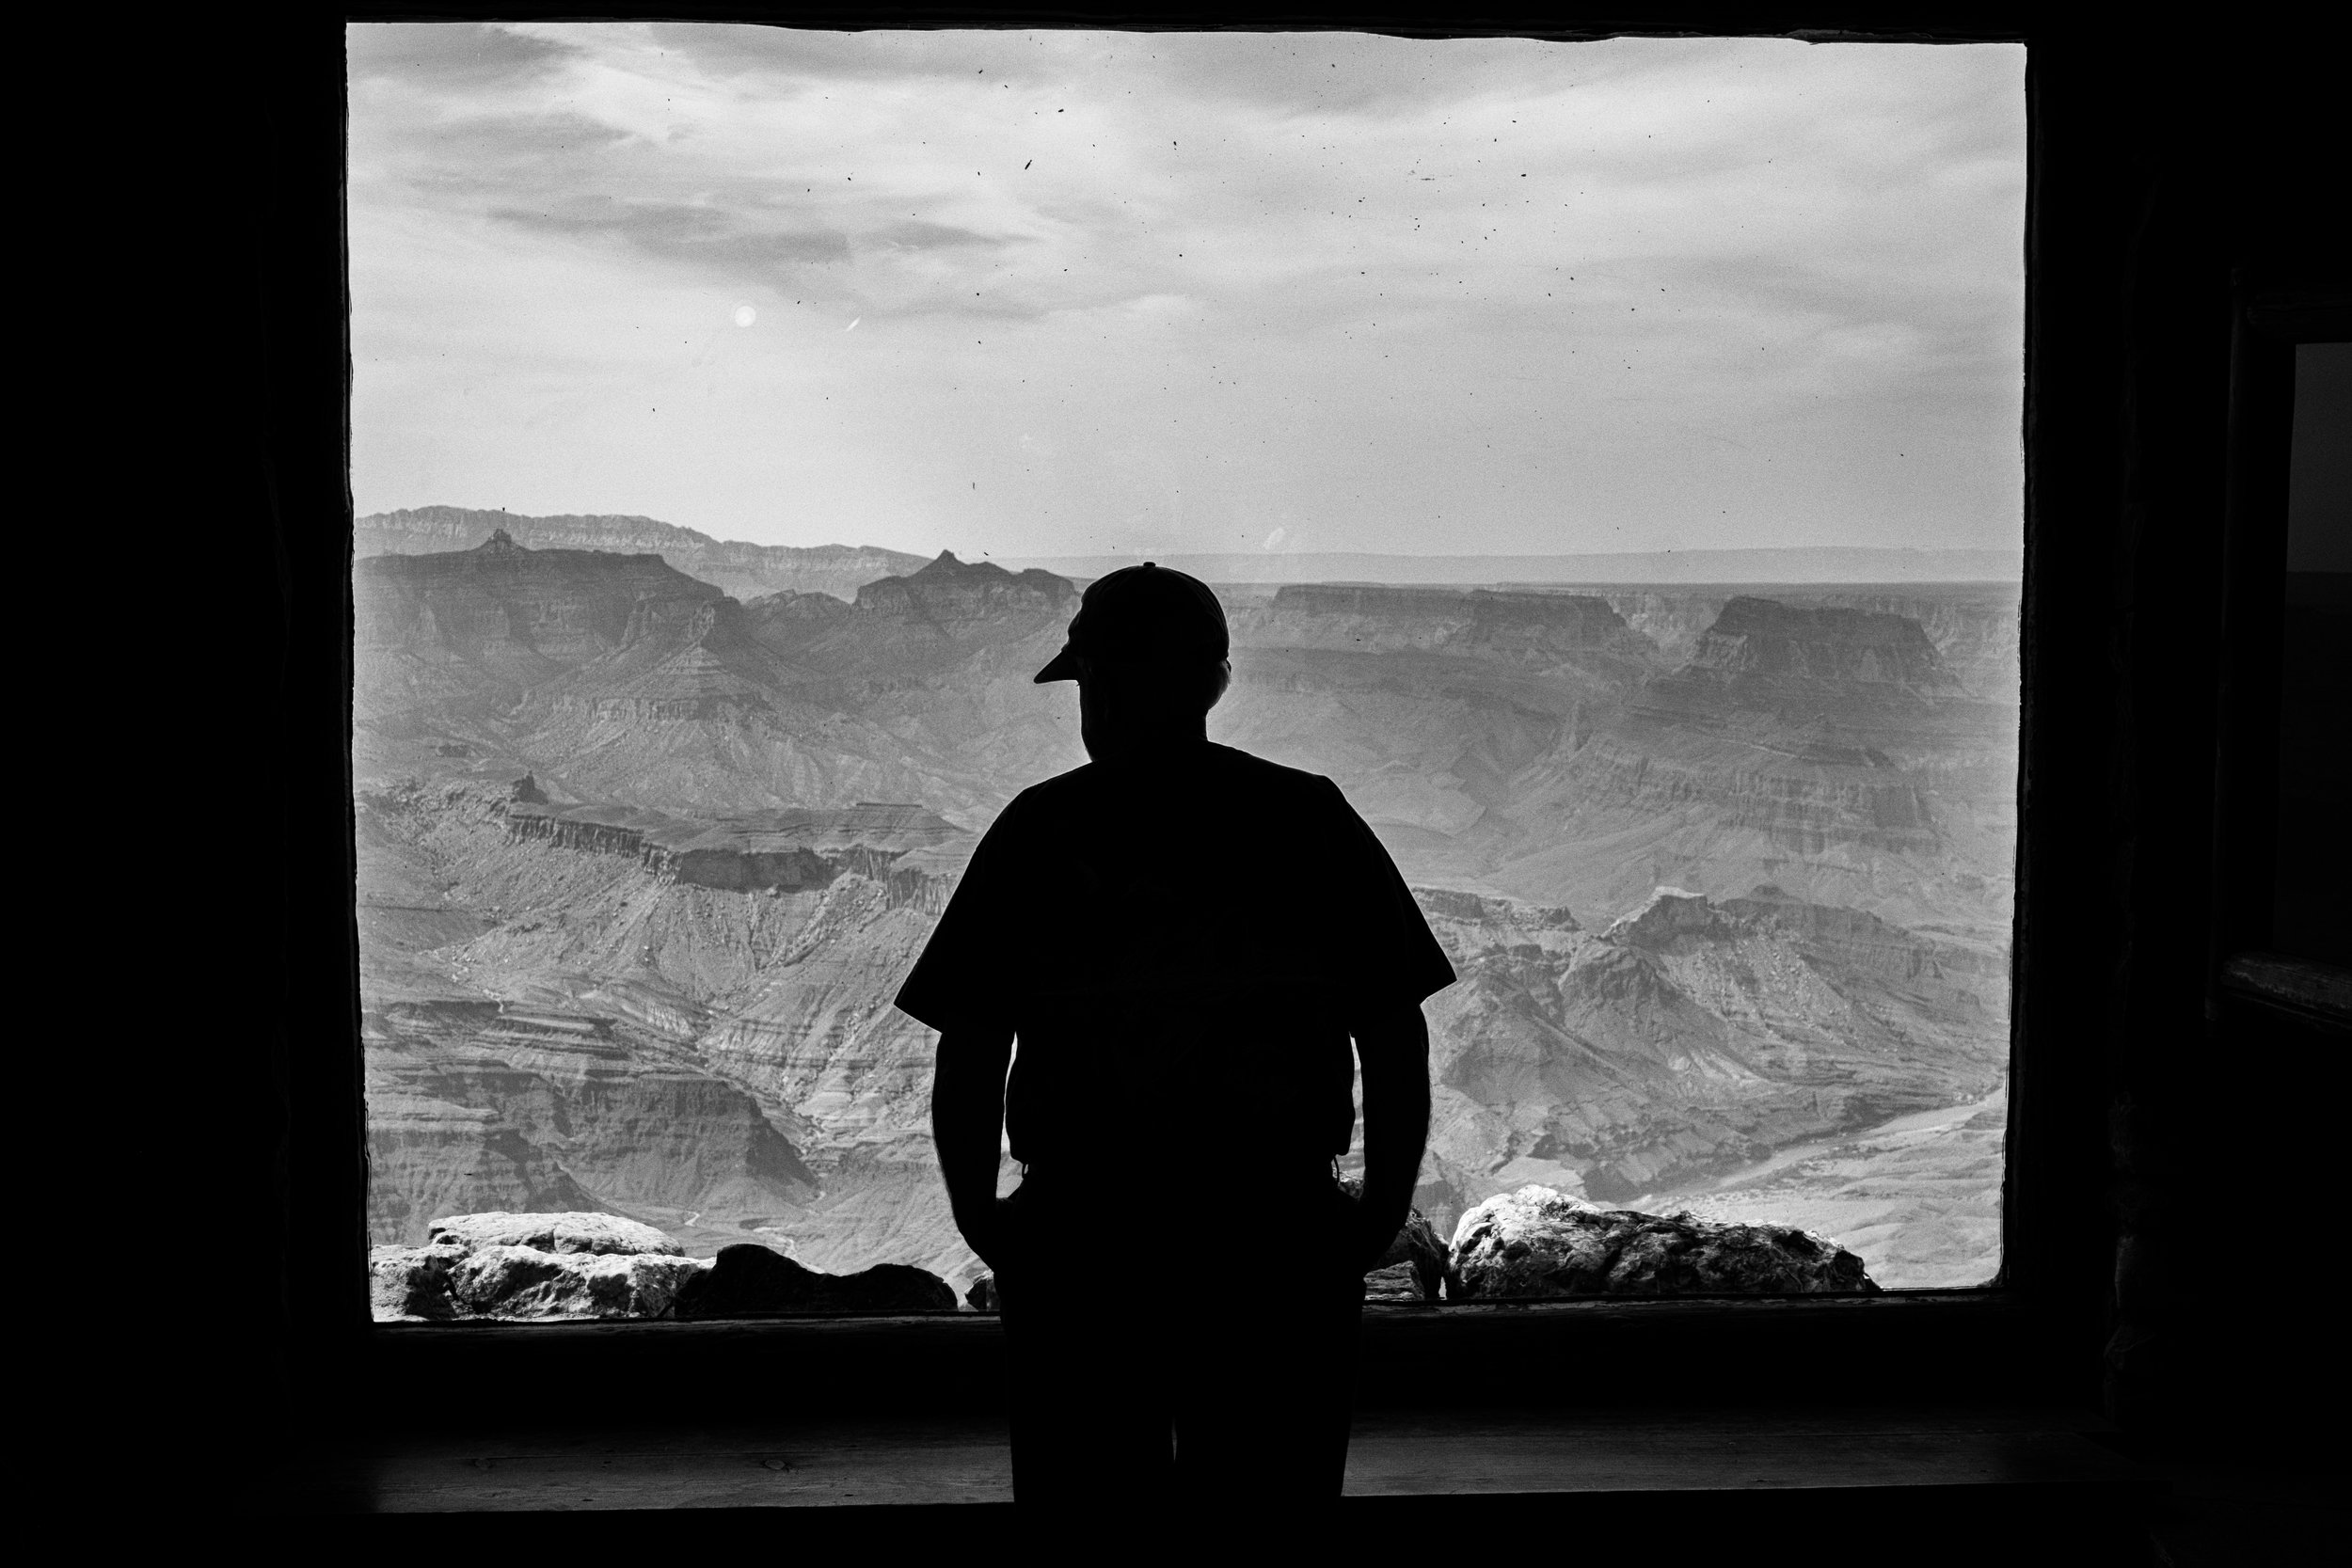 """Room with a view"" June 7, 2017. Desert View Watchtower. Grand Canyon South Rim Fujifilm X-Pro2, 35mm, f/11, 1/120, ISO 400"